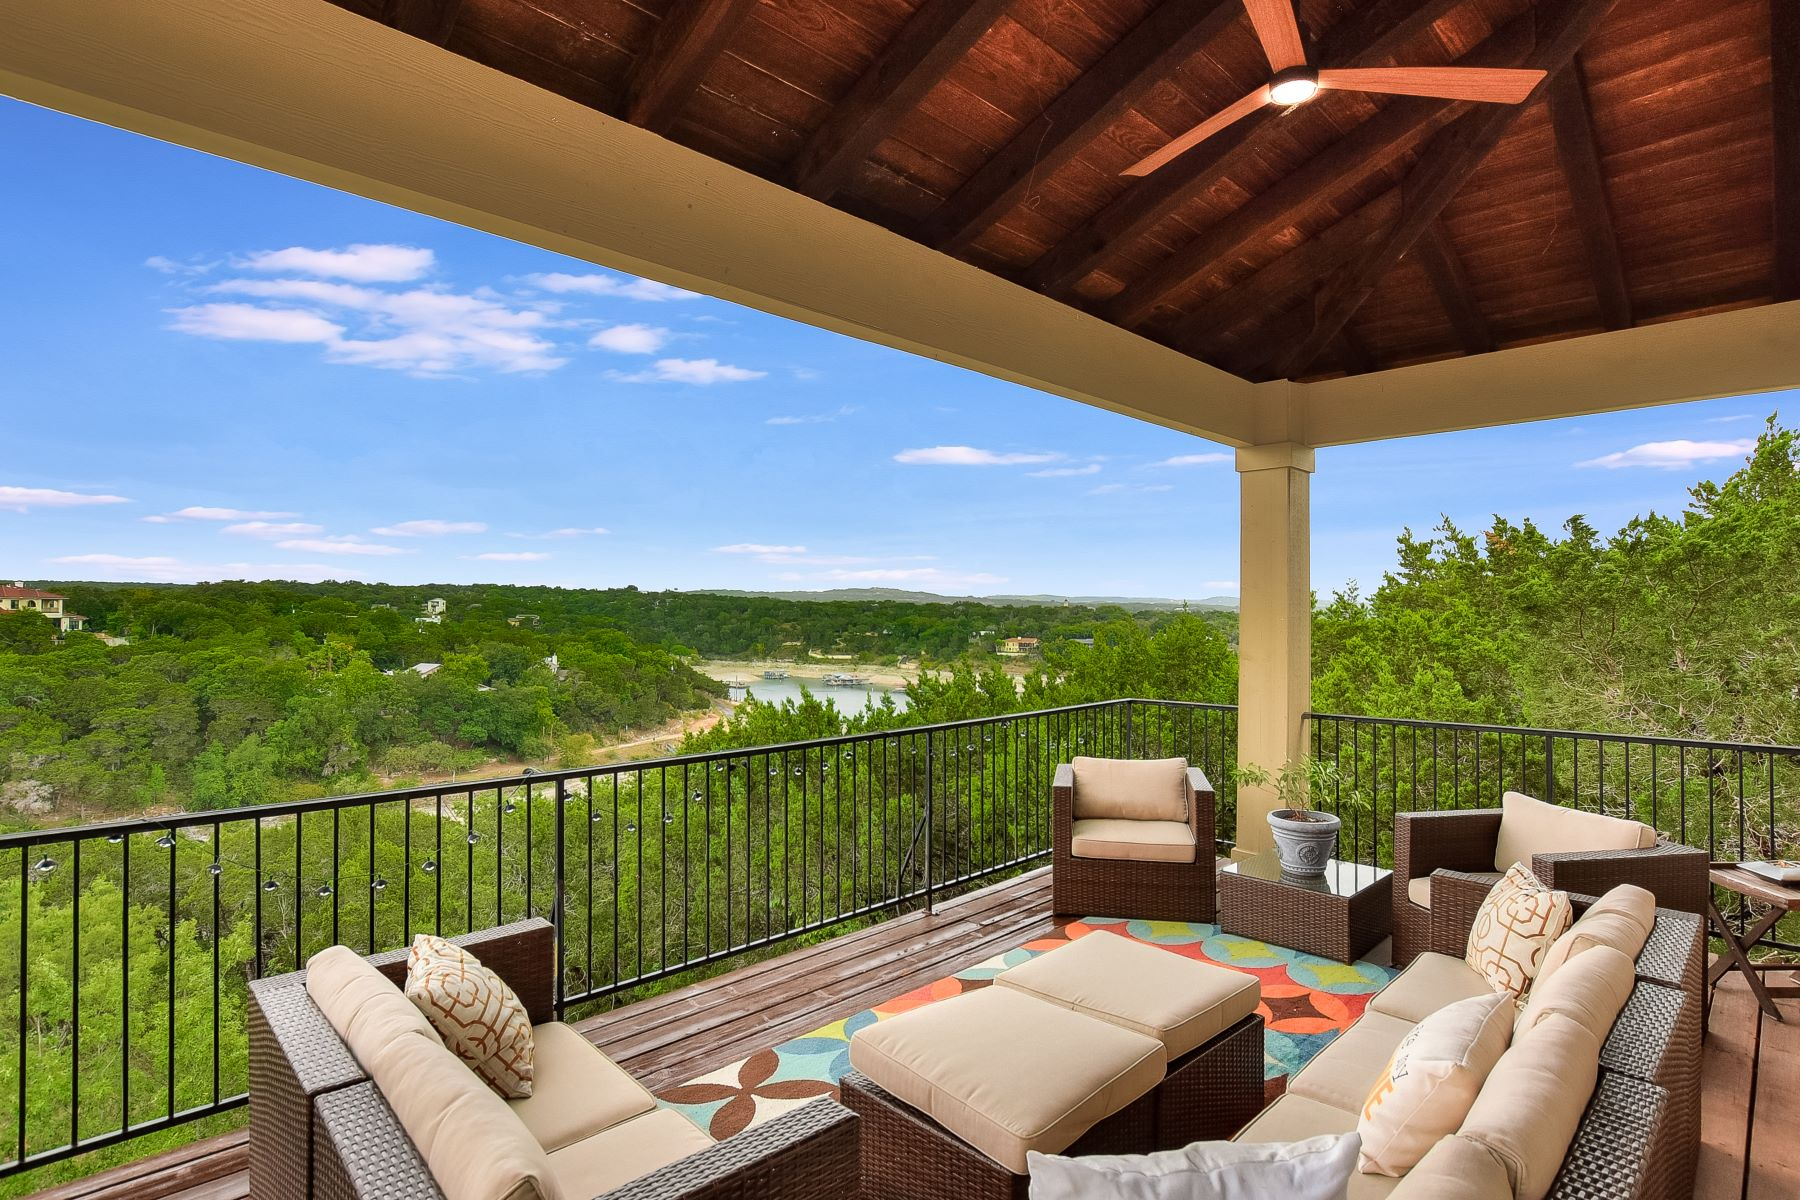 Additional photo for property listing at 3902 Red Bird Trail#B, Lago Vista, TX 78645 3902 Red Bird Trail#B Lago Vista, Texas 78645 United States